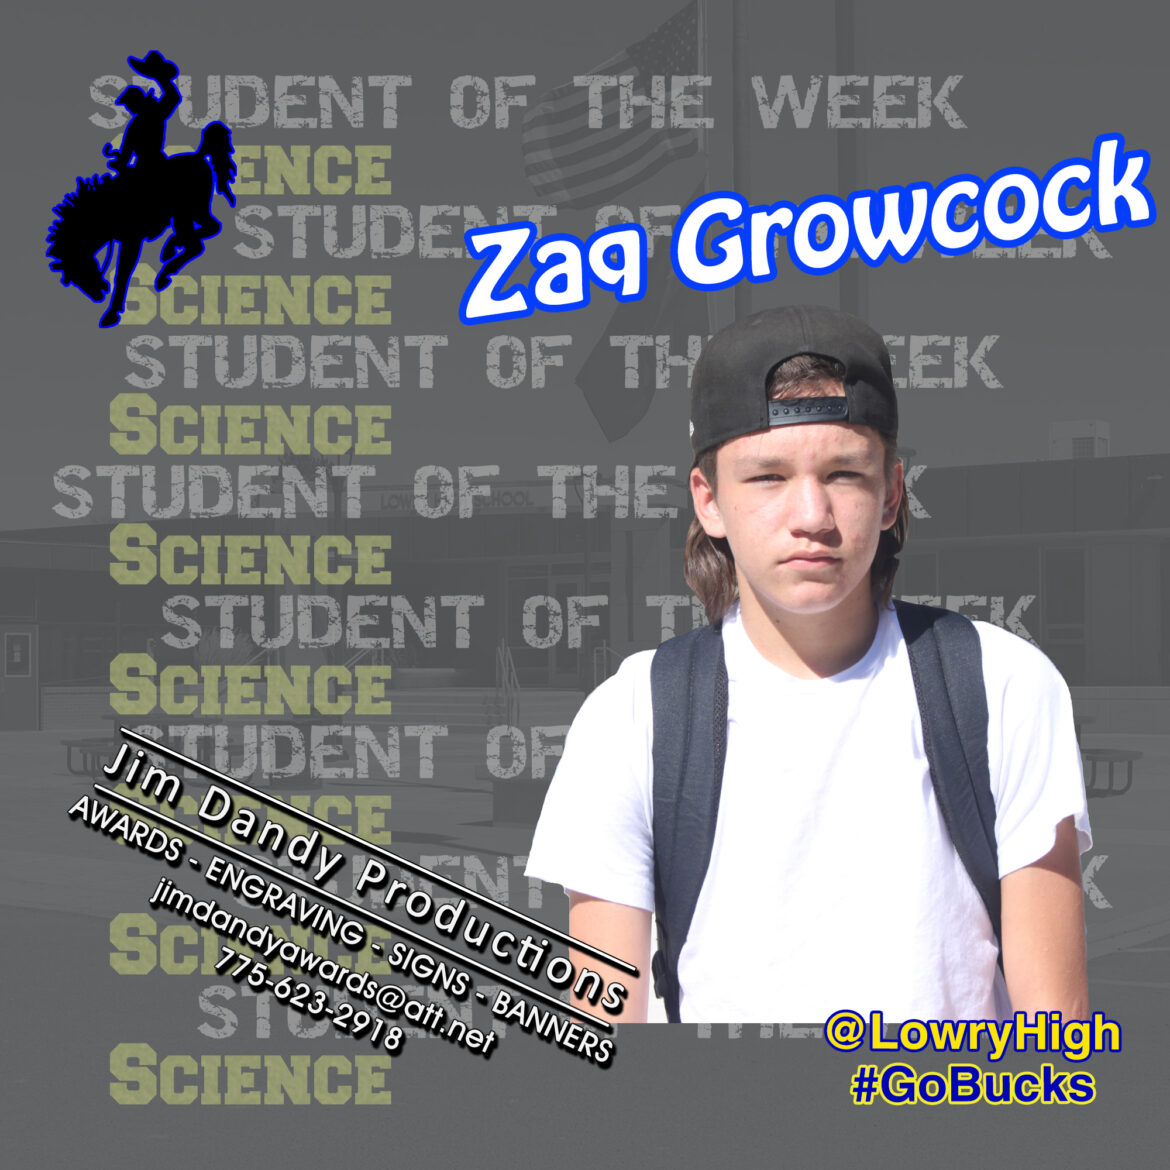 Zaquery Growcock named Student of the Week in Science